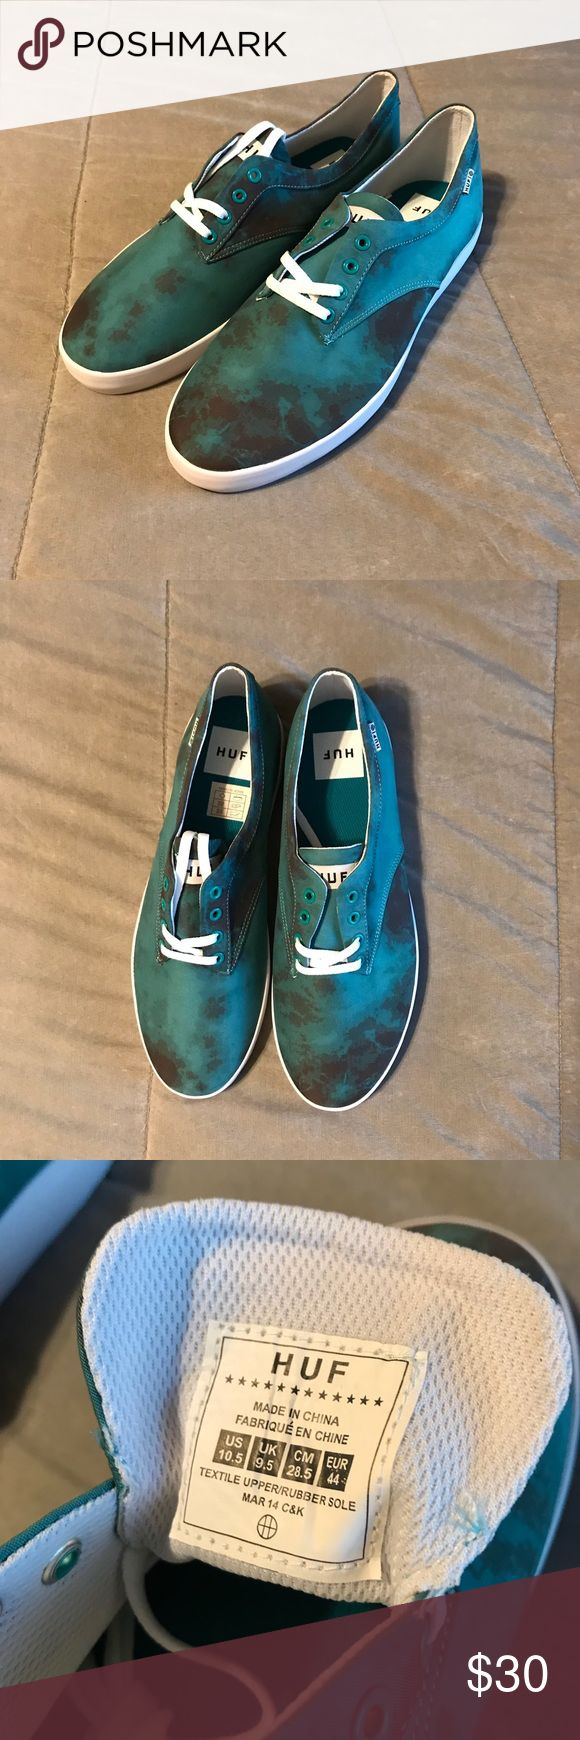 HUF Sneakers Never worn before. Great shoes and look amazing w almost any outfit! HUF Shoes Sneakers